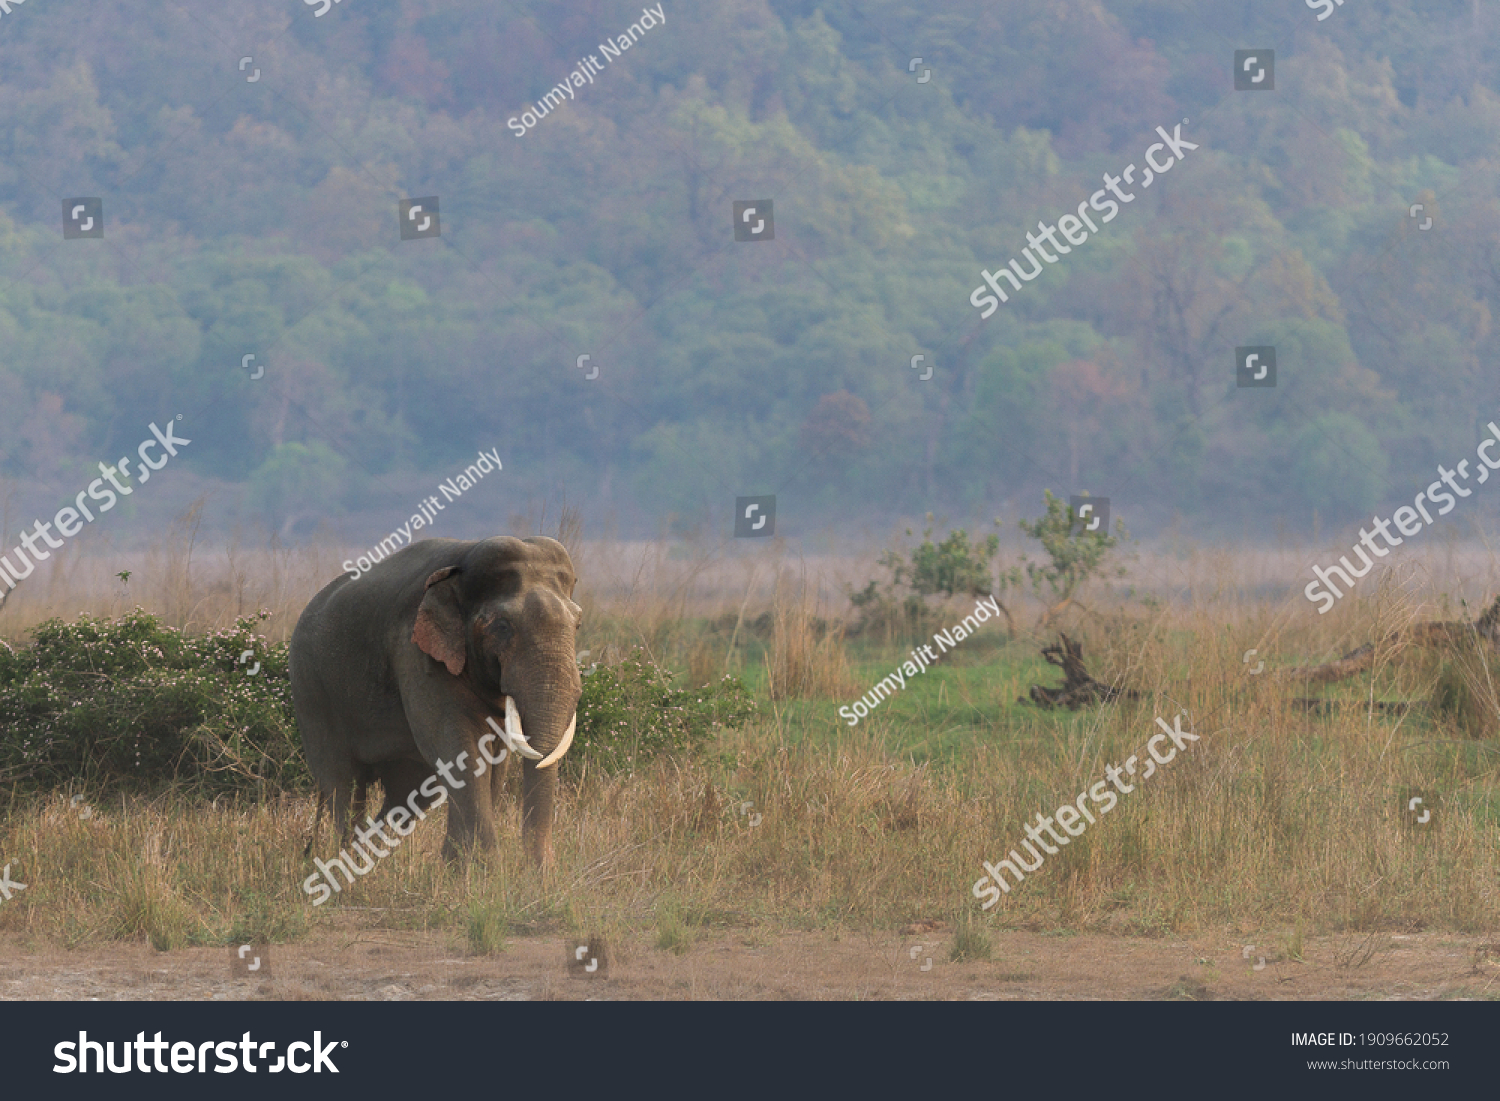 Adult Asian tusker walking in the grassland with the backdrop of Himalayan hills in Corbett Tiger Reserve of Uttarakhand state in India #1909662052